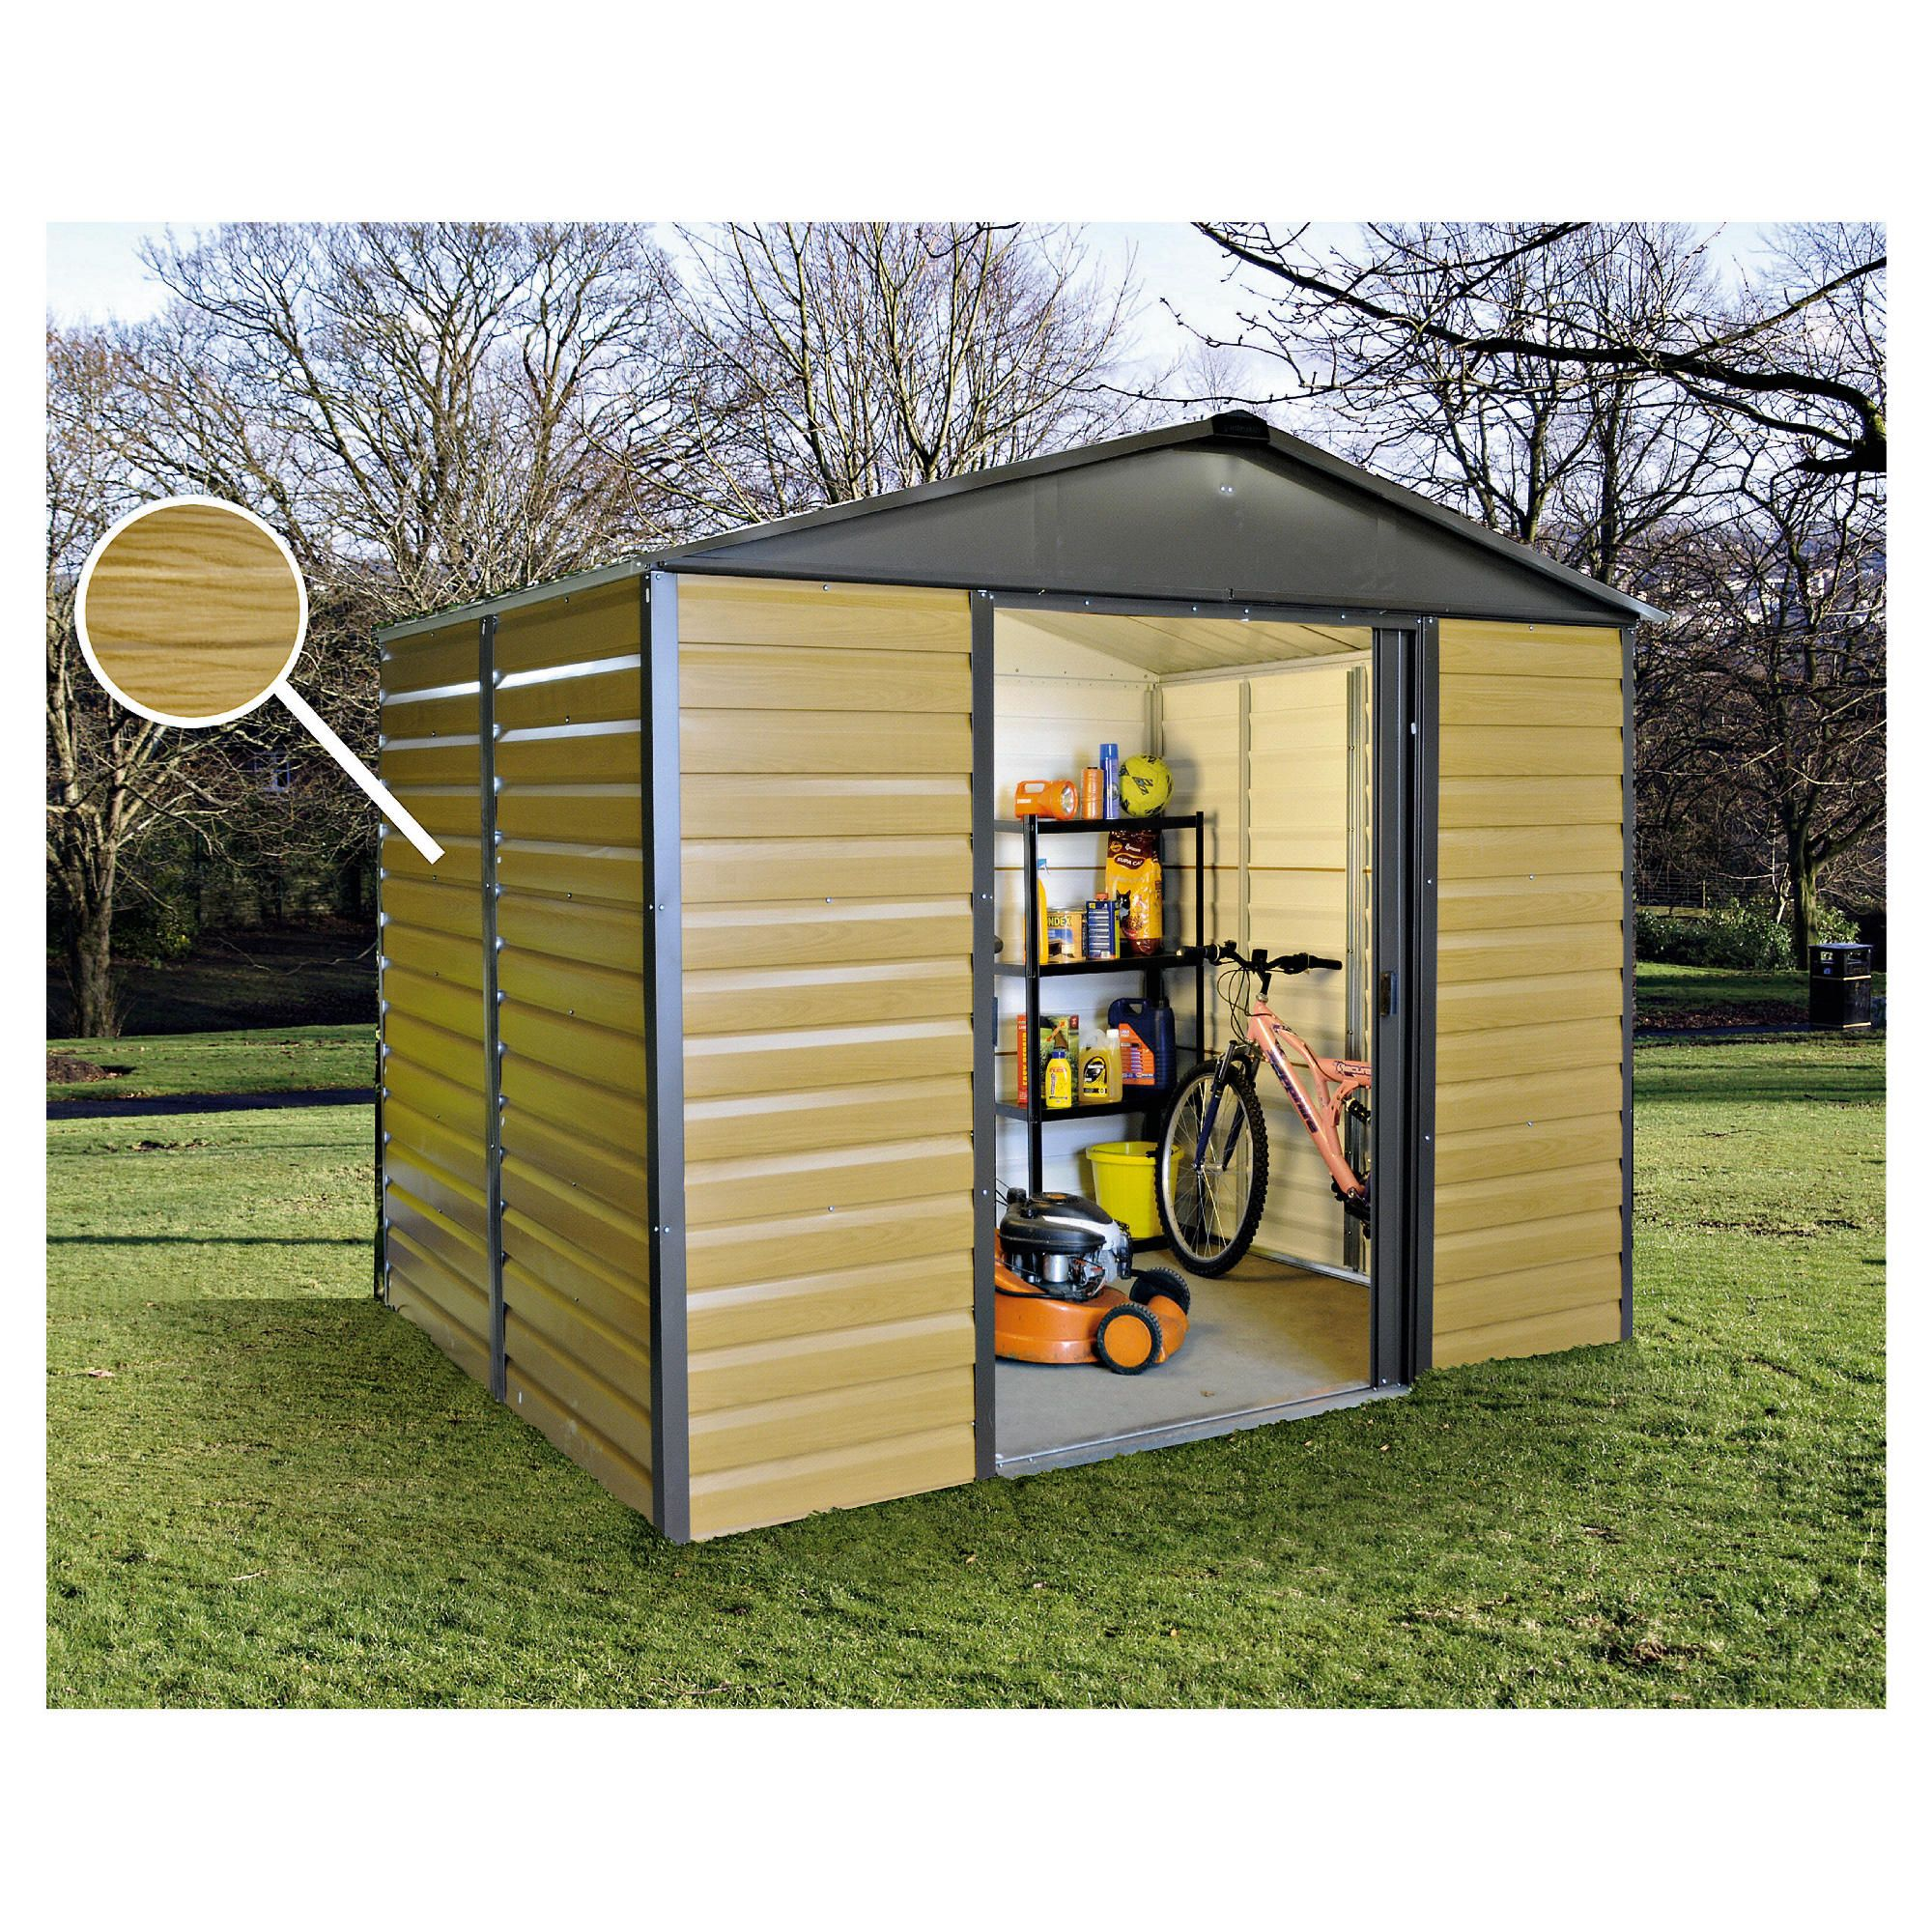 Keter Apex 8x6 Shed Instructions